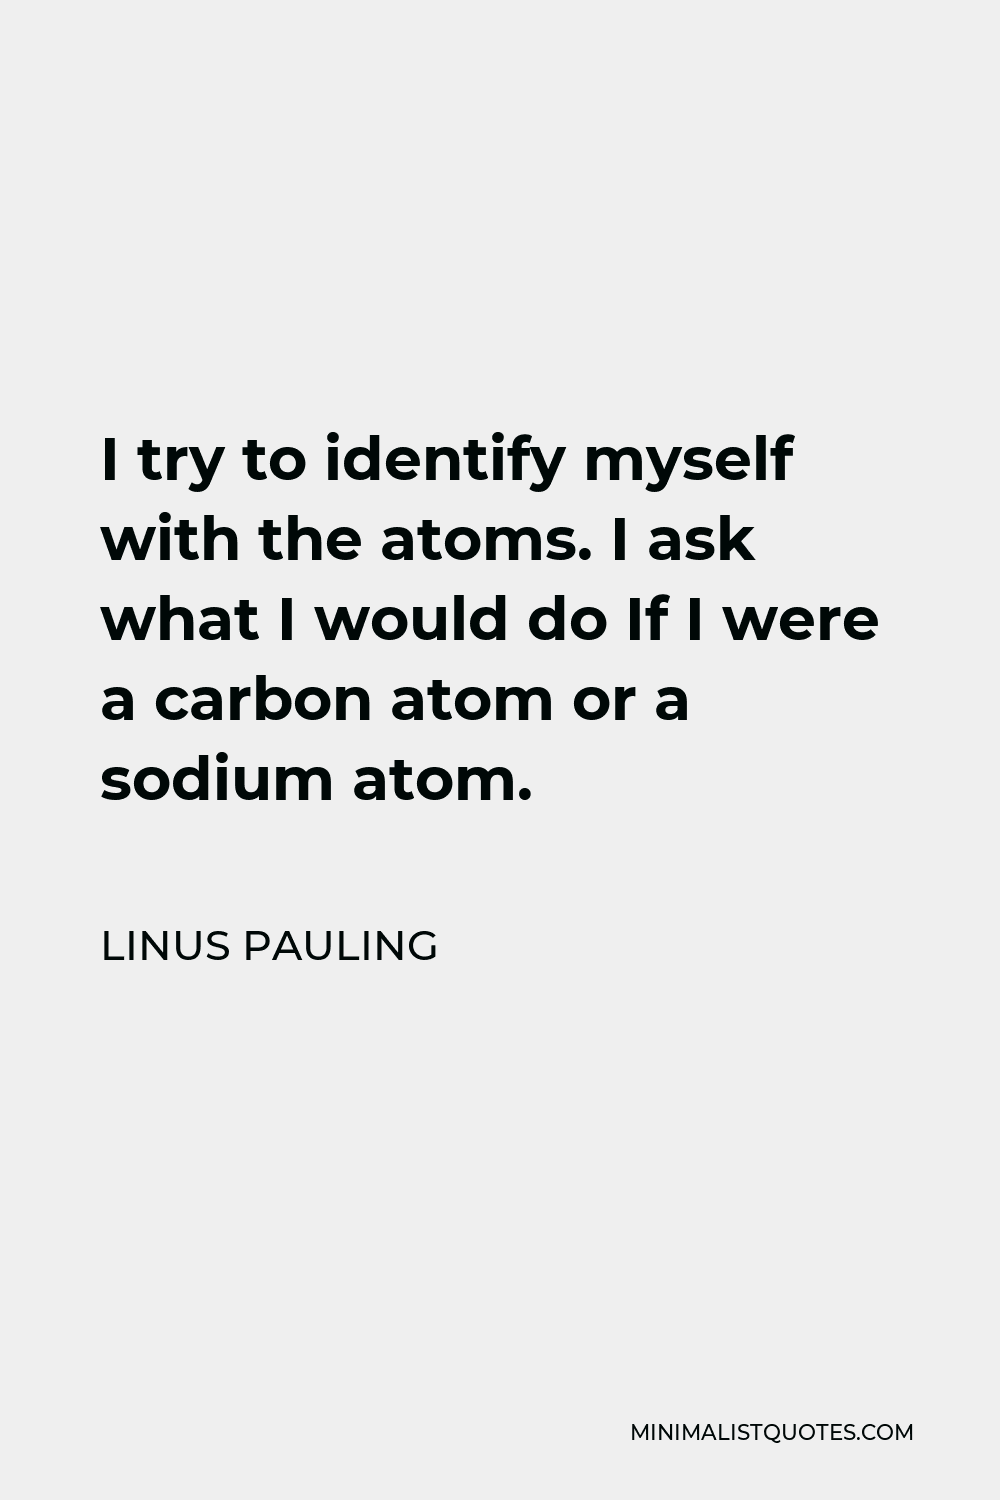 Linus Pauling Quote - I try to identify myself with the atoms. I ask what I would do If I were a carbon atom or a sodium atom.